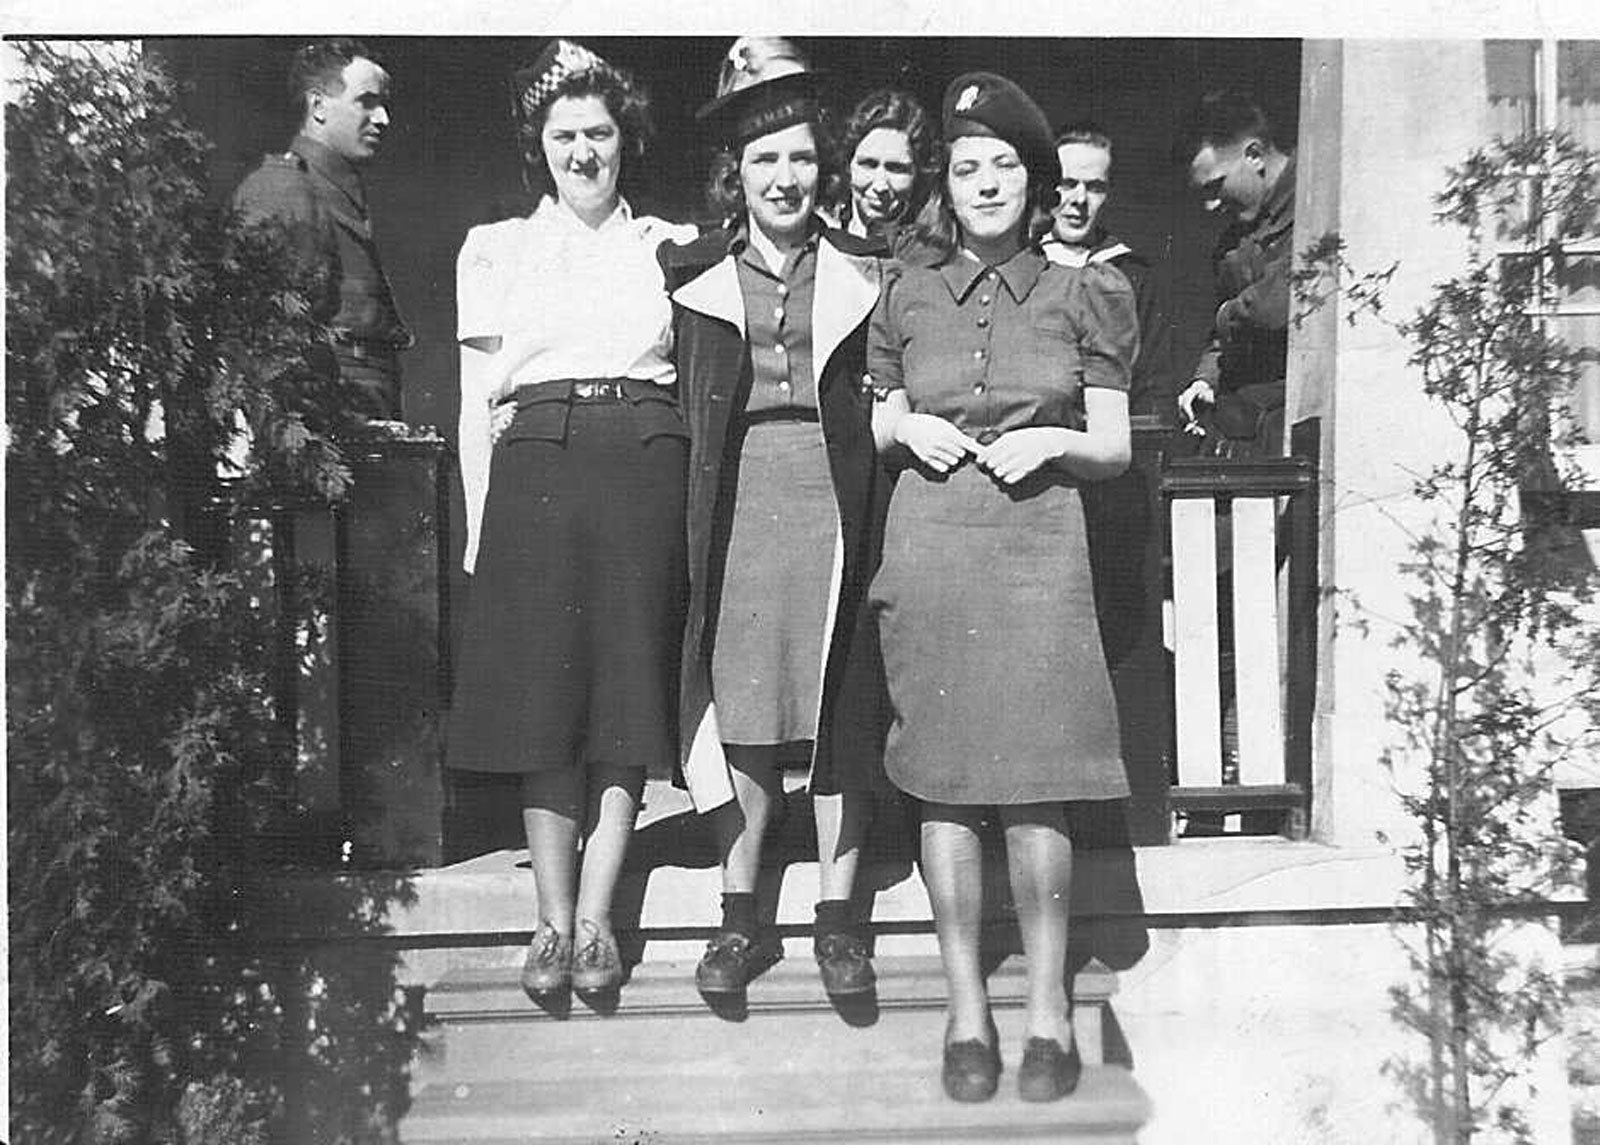 Laura Nadine Hunziger, Thelma Earnshaw, & Marian Kathleen Kosowan, in 1940. Courtesy the Rosseau Historical Society.